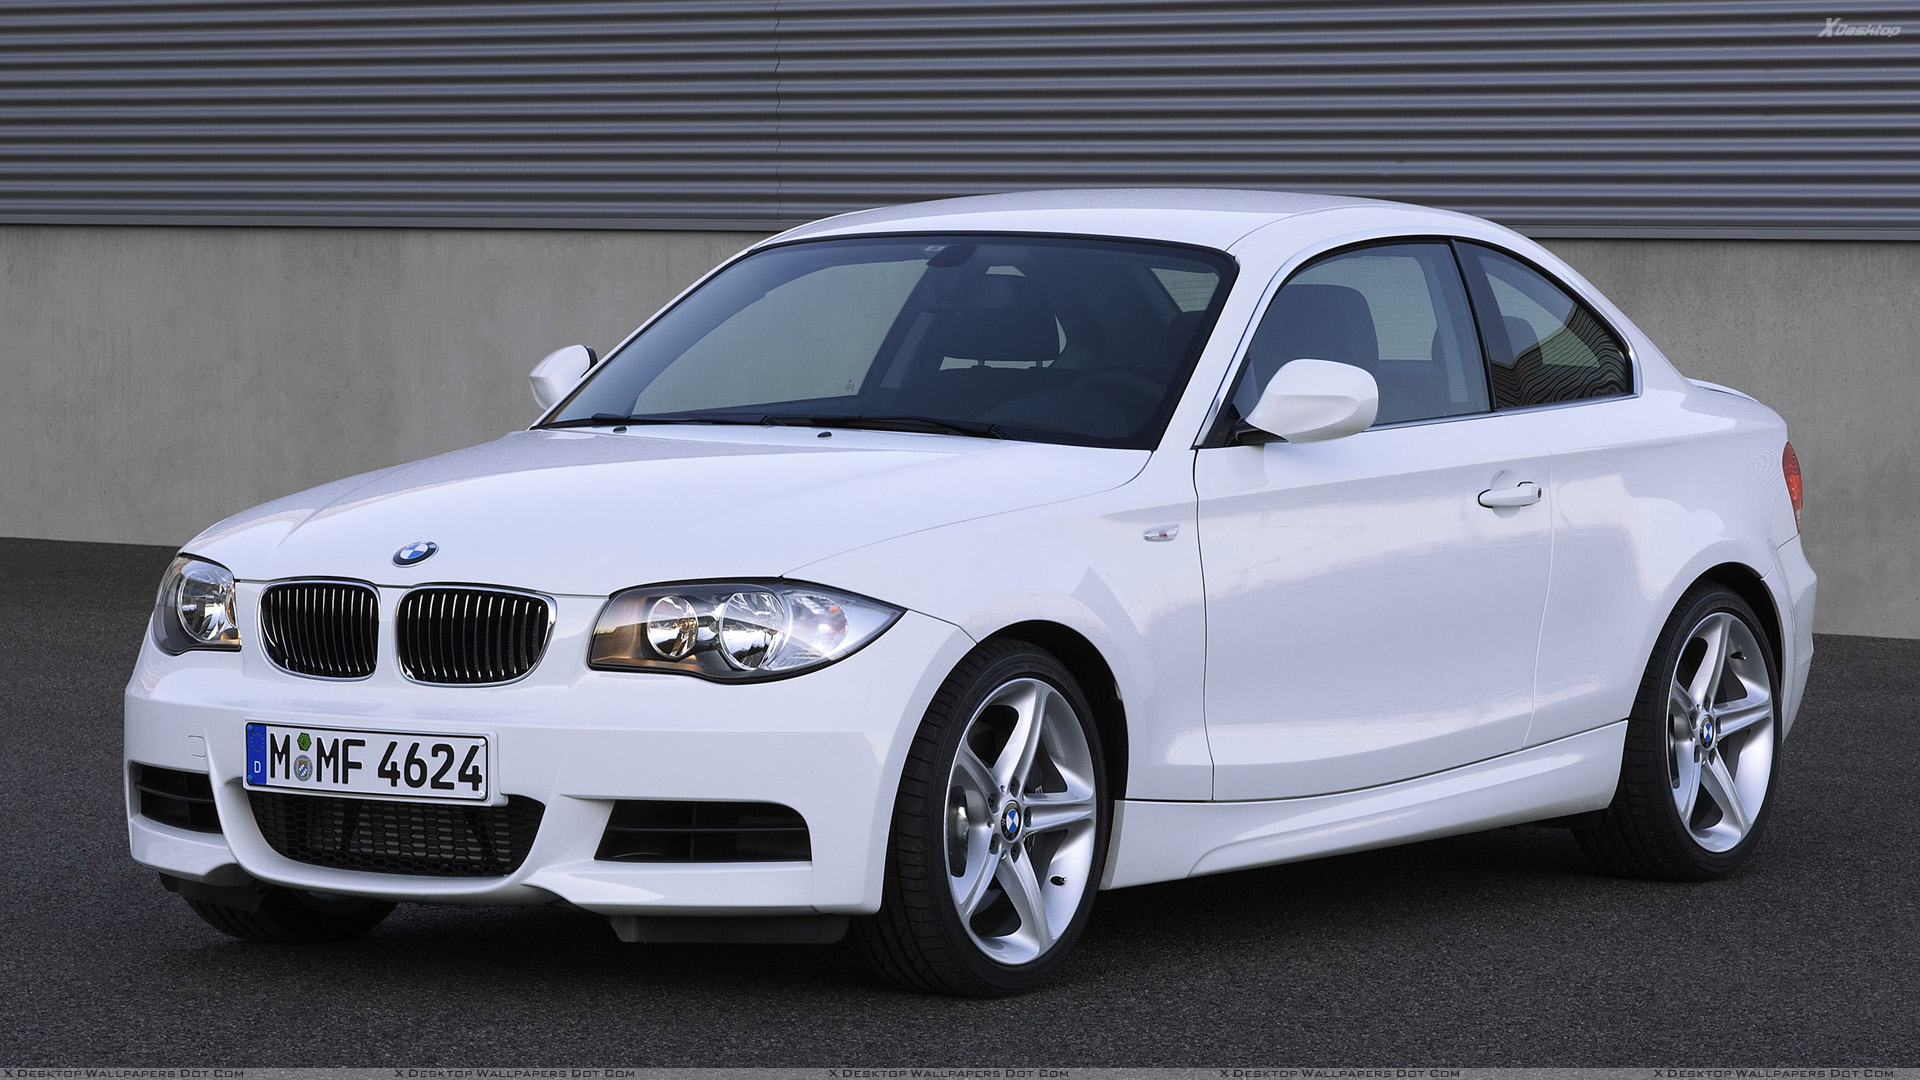 Pictures of bmw 1er coupe (e82) 2007 #4